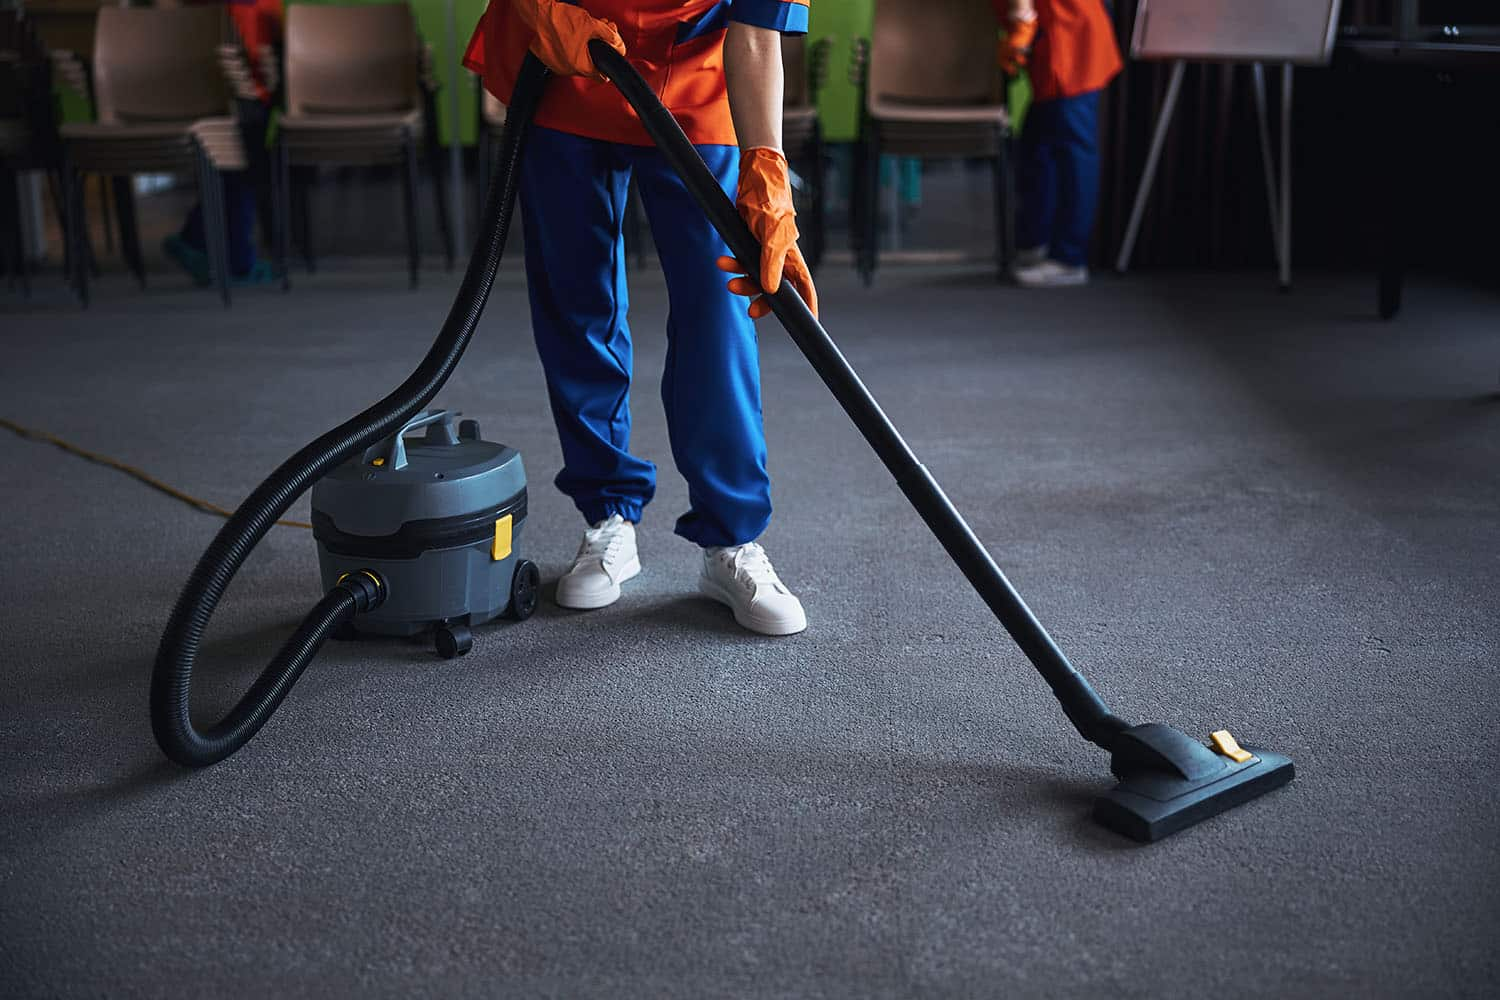 Cleaner using a canister vacuum cleaner